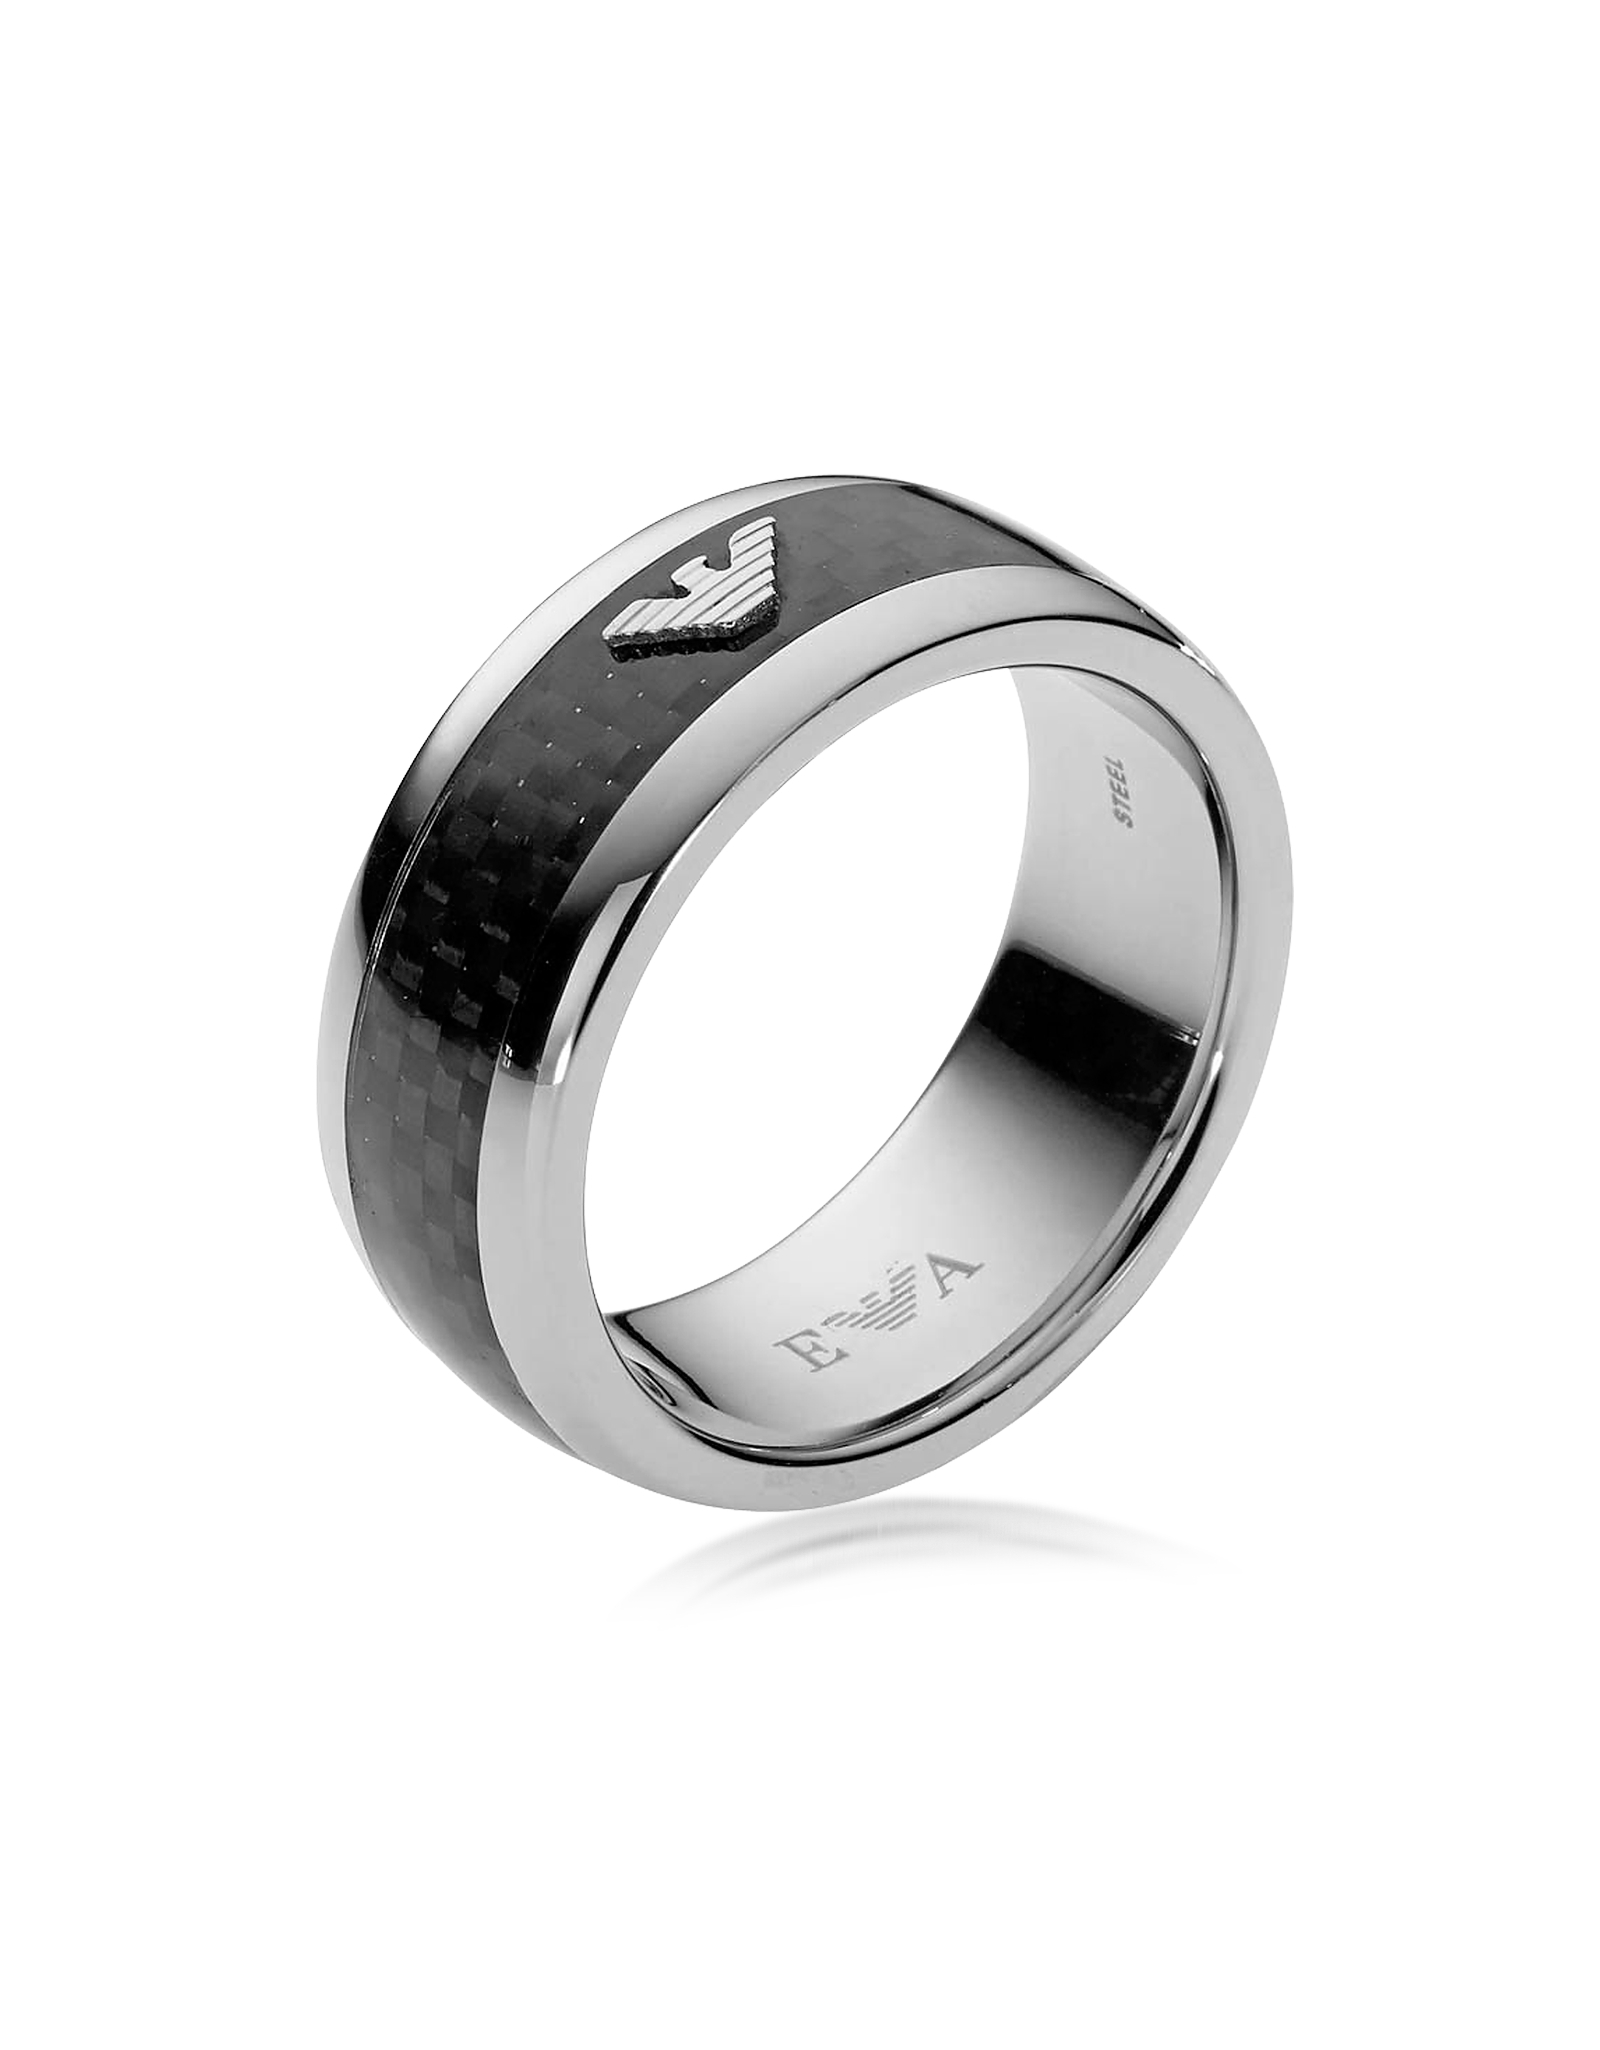 carbon rose beveled fiber inlay com edge plated dp for amazon gold wedding black rings band mnh tungsten men